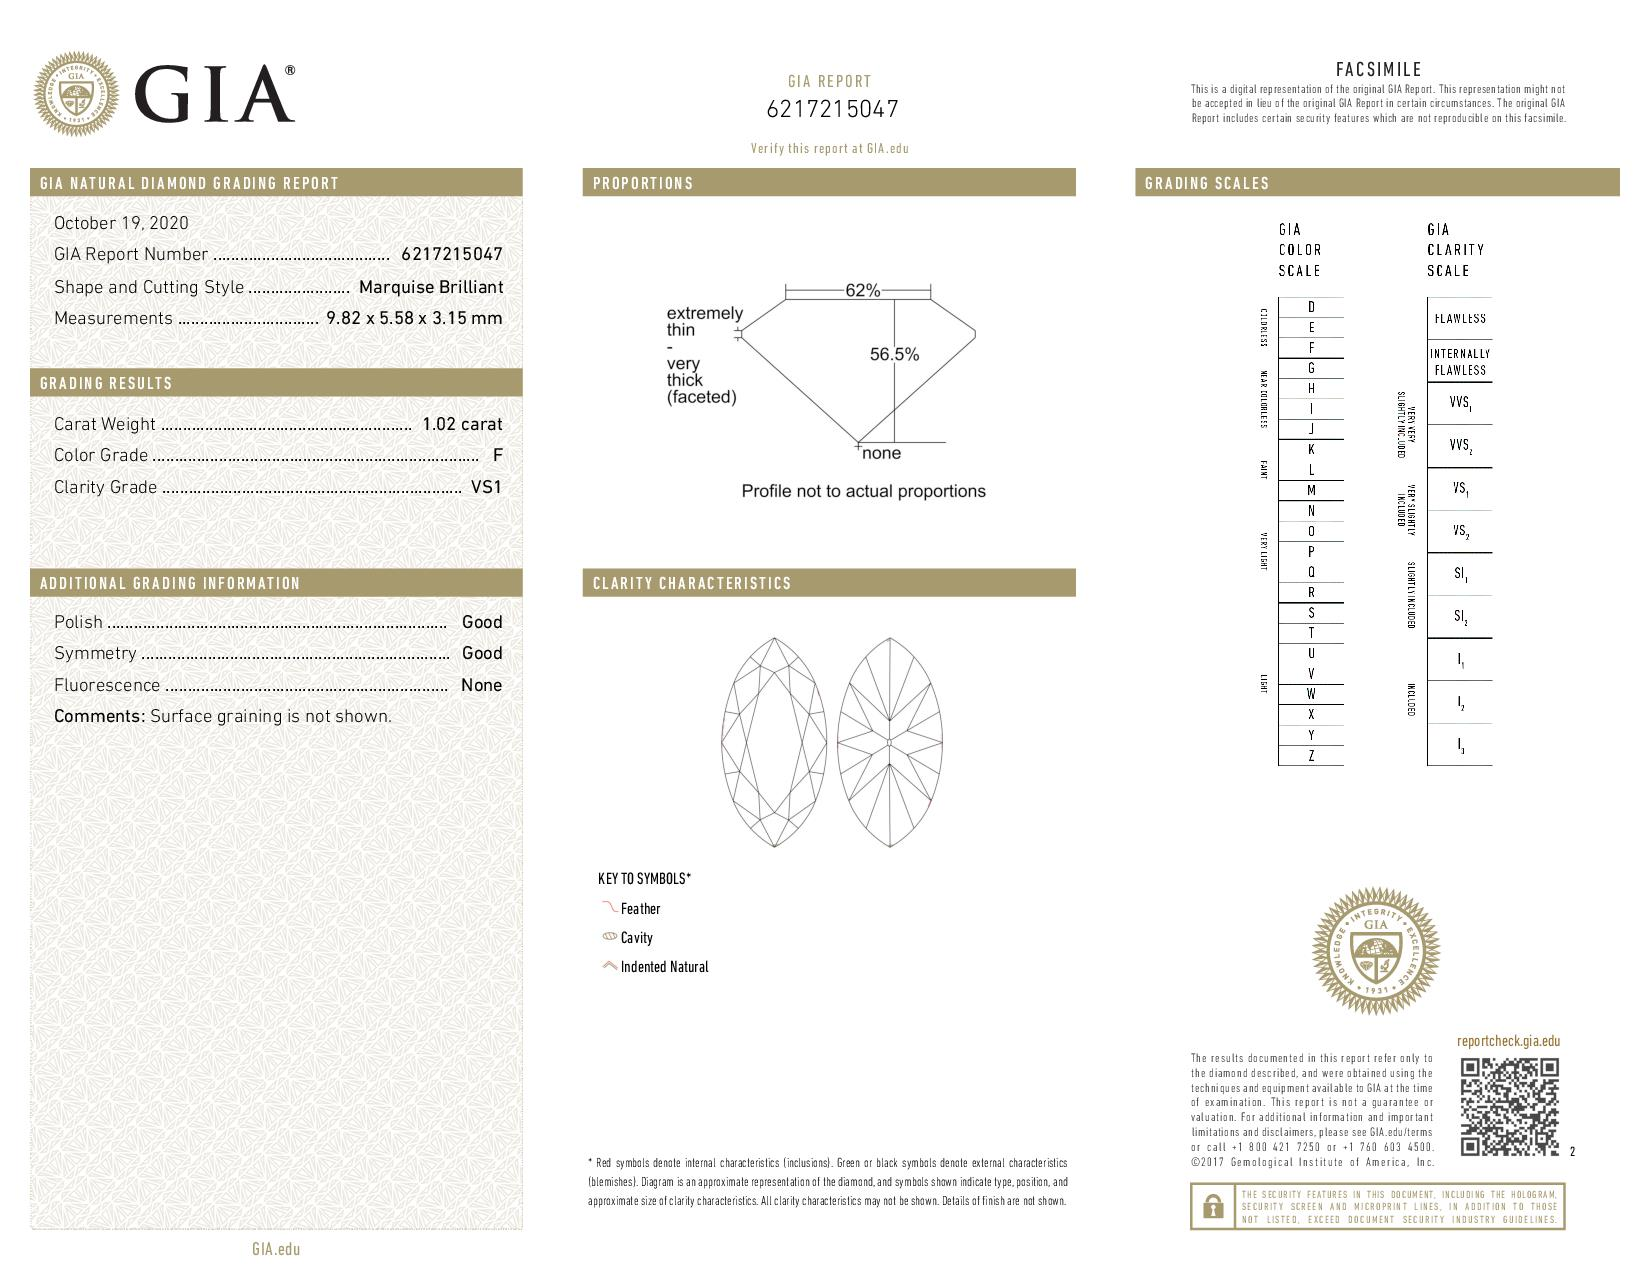 This is a 1.02 carat marquise shape, F color, VS1 clarity natural diamond accompanied by a GIA grading report.